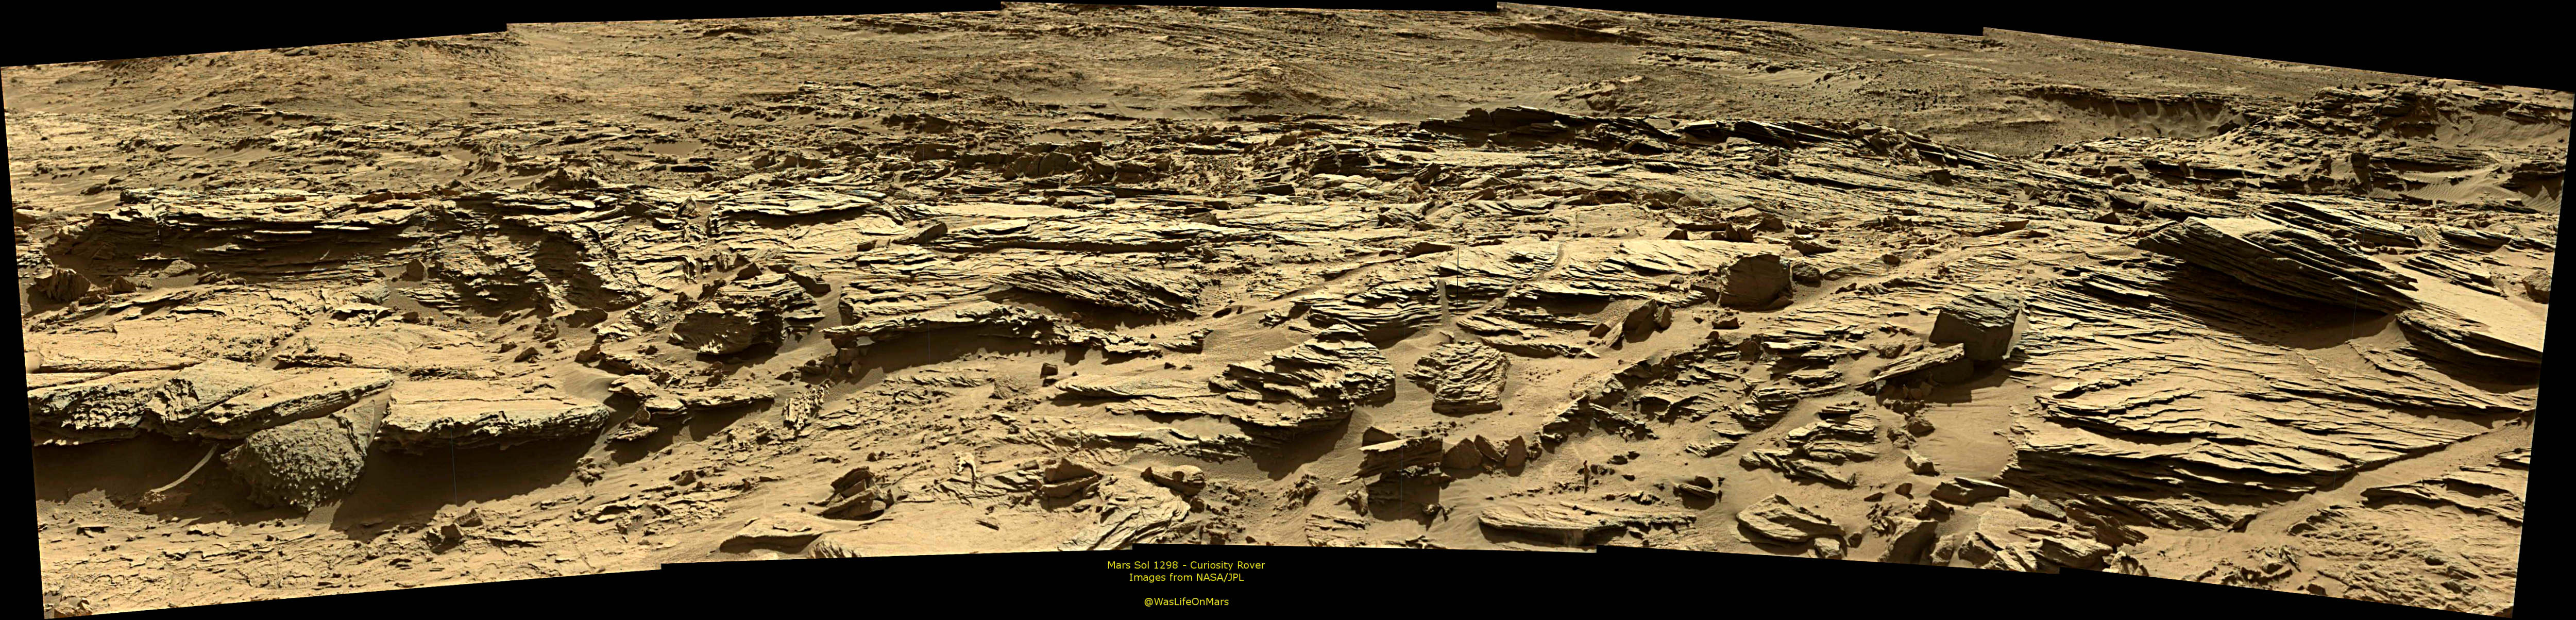 Curiosity Rover Panoramic View 1 of Mars Sol 1298 – Click to enlarge